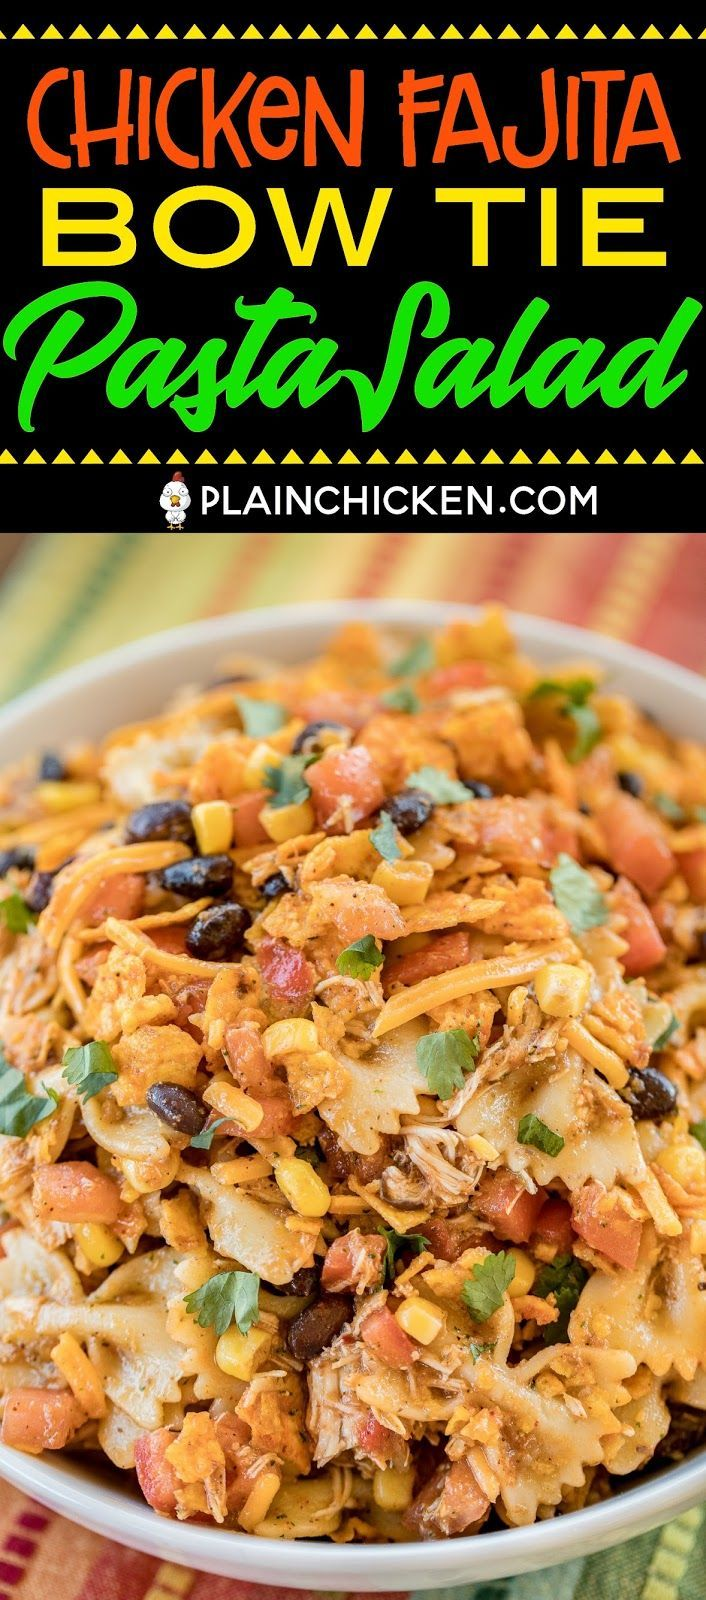 Fajita Bow Tie Pasta Salad - crazy good!! Chicken and bow tie pasta tossed with lime juice, cumin, chili powder, cilantro, olive oil, corn, tomatoes, black beans, salsa, cheese and Doritos! Can make without the chicken and serve as a side dish. Great for summer potlucks!